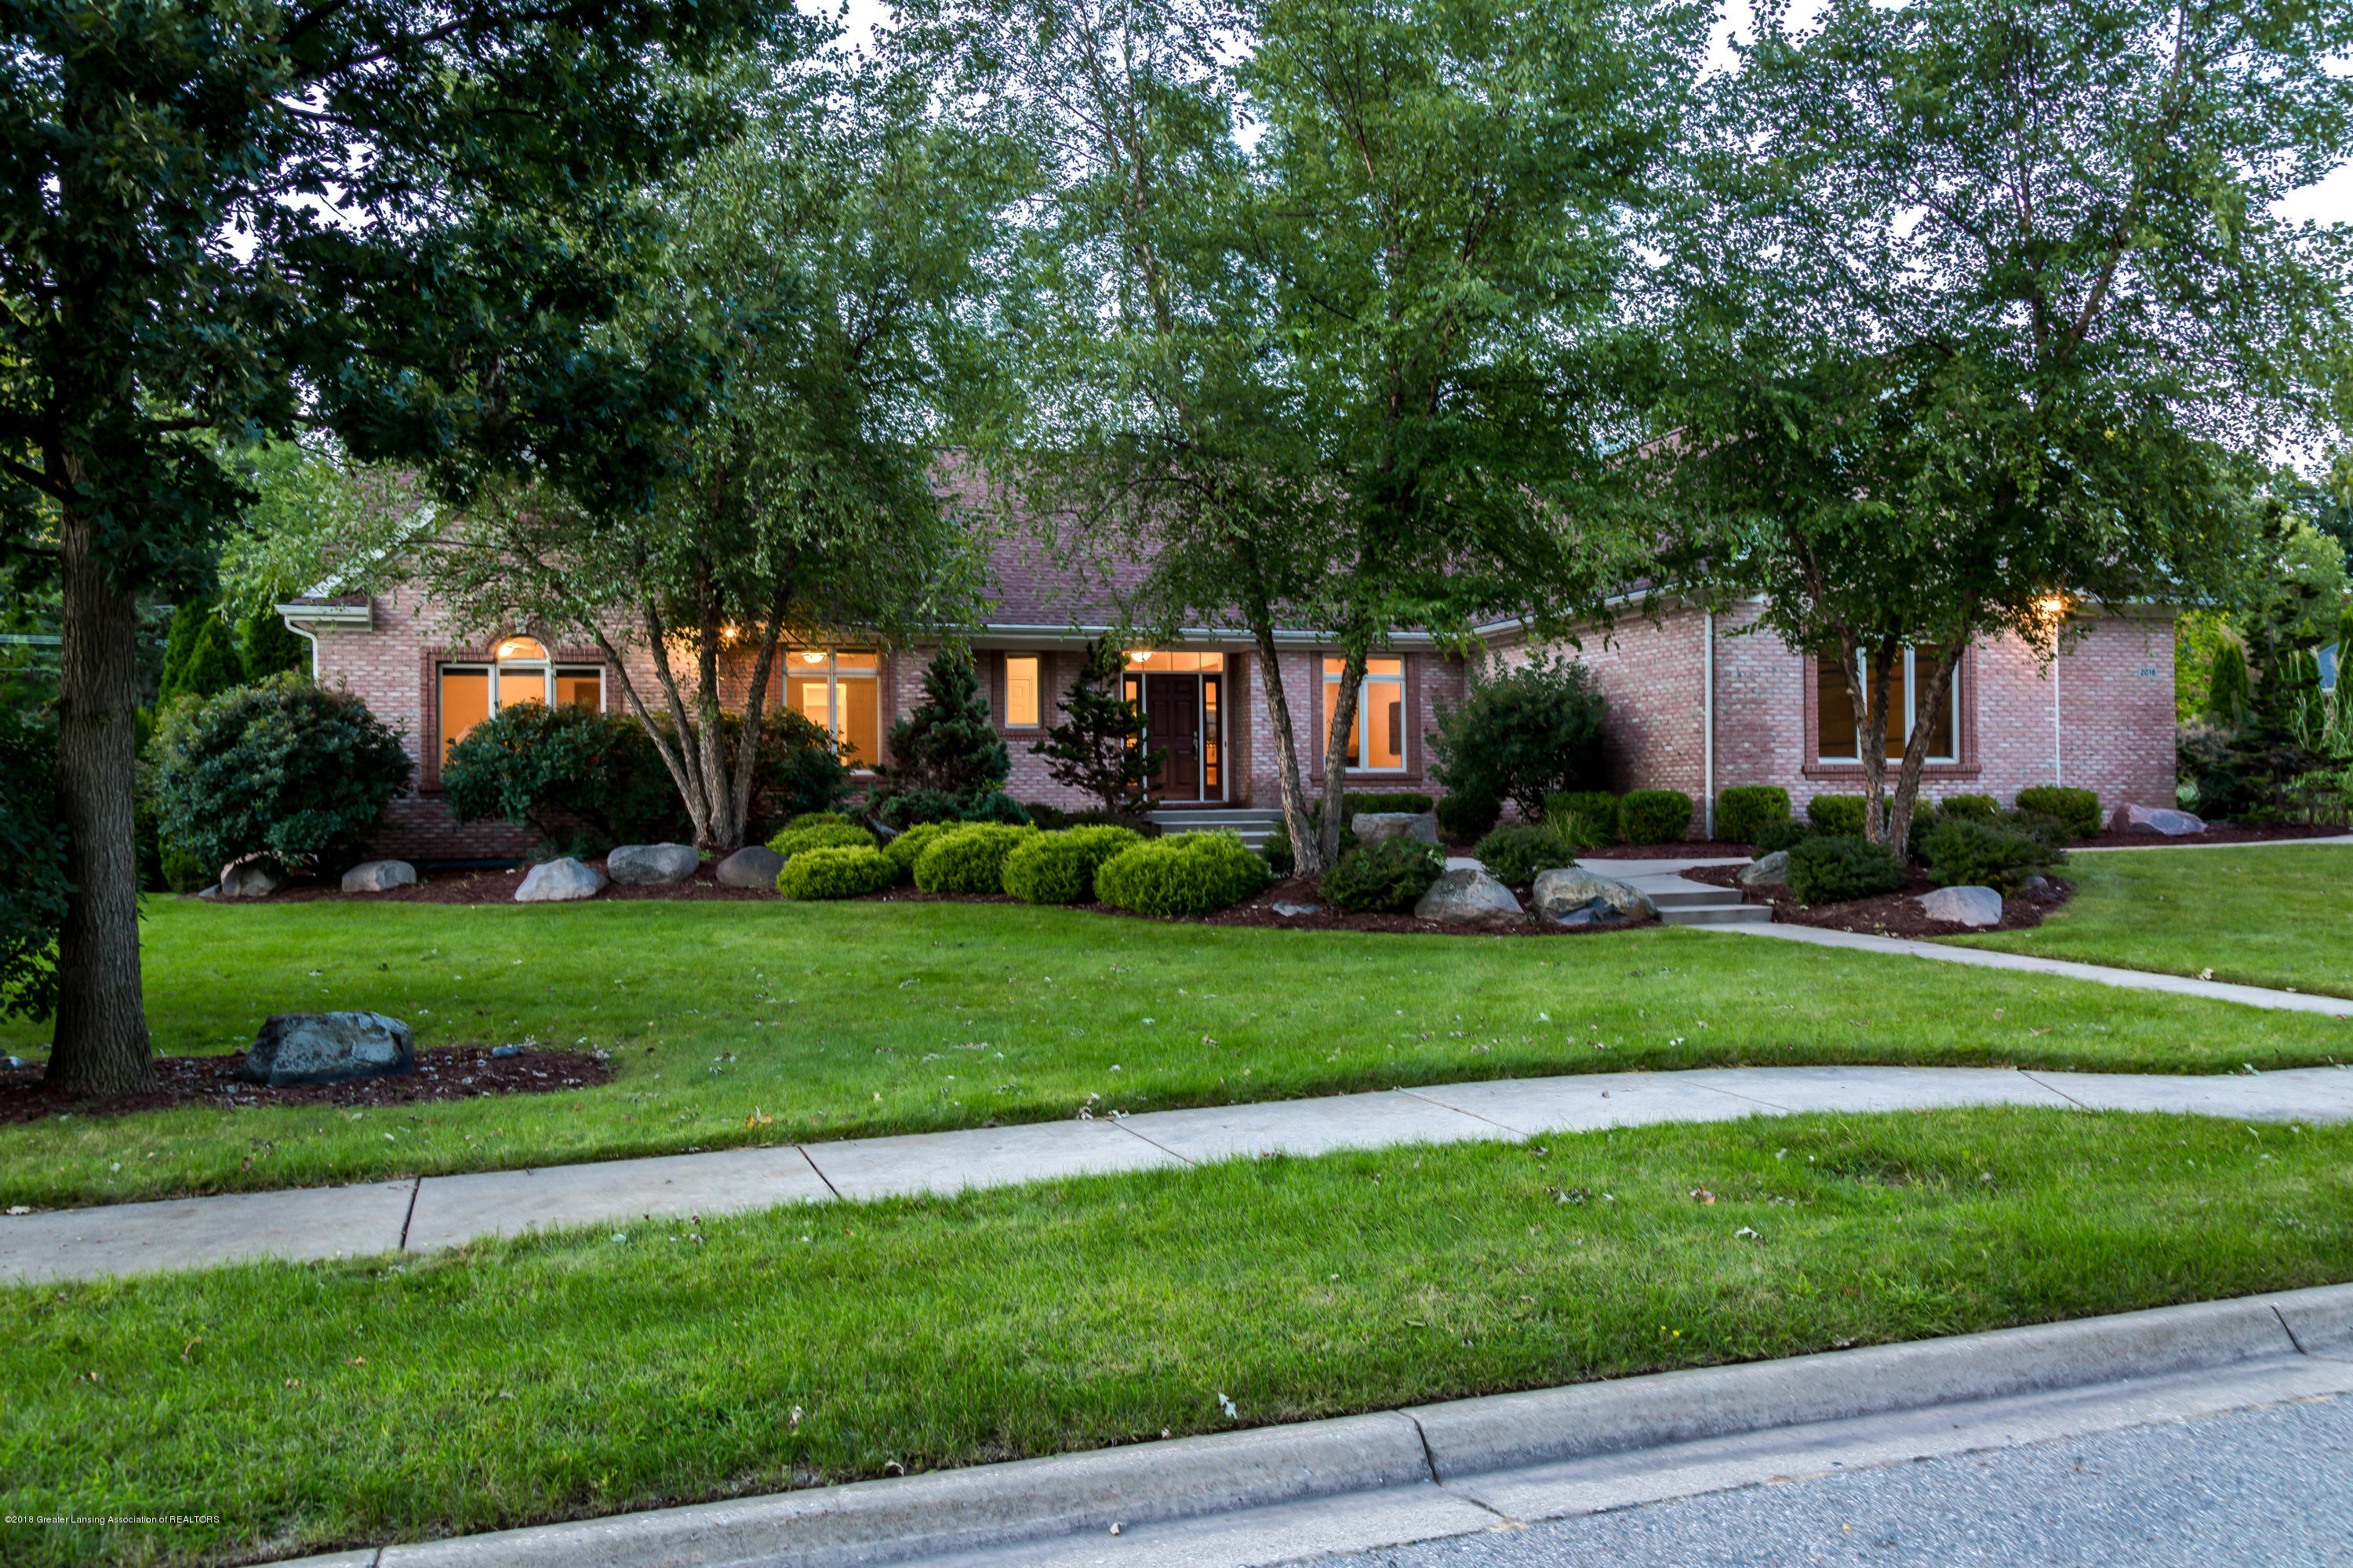 2016 Belwood Dr - 20180902-942A7915-HDR - 32